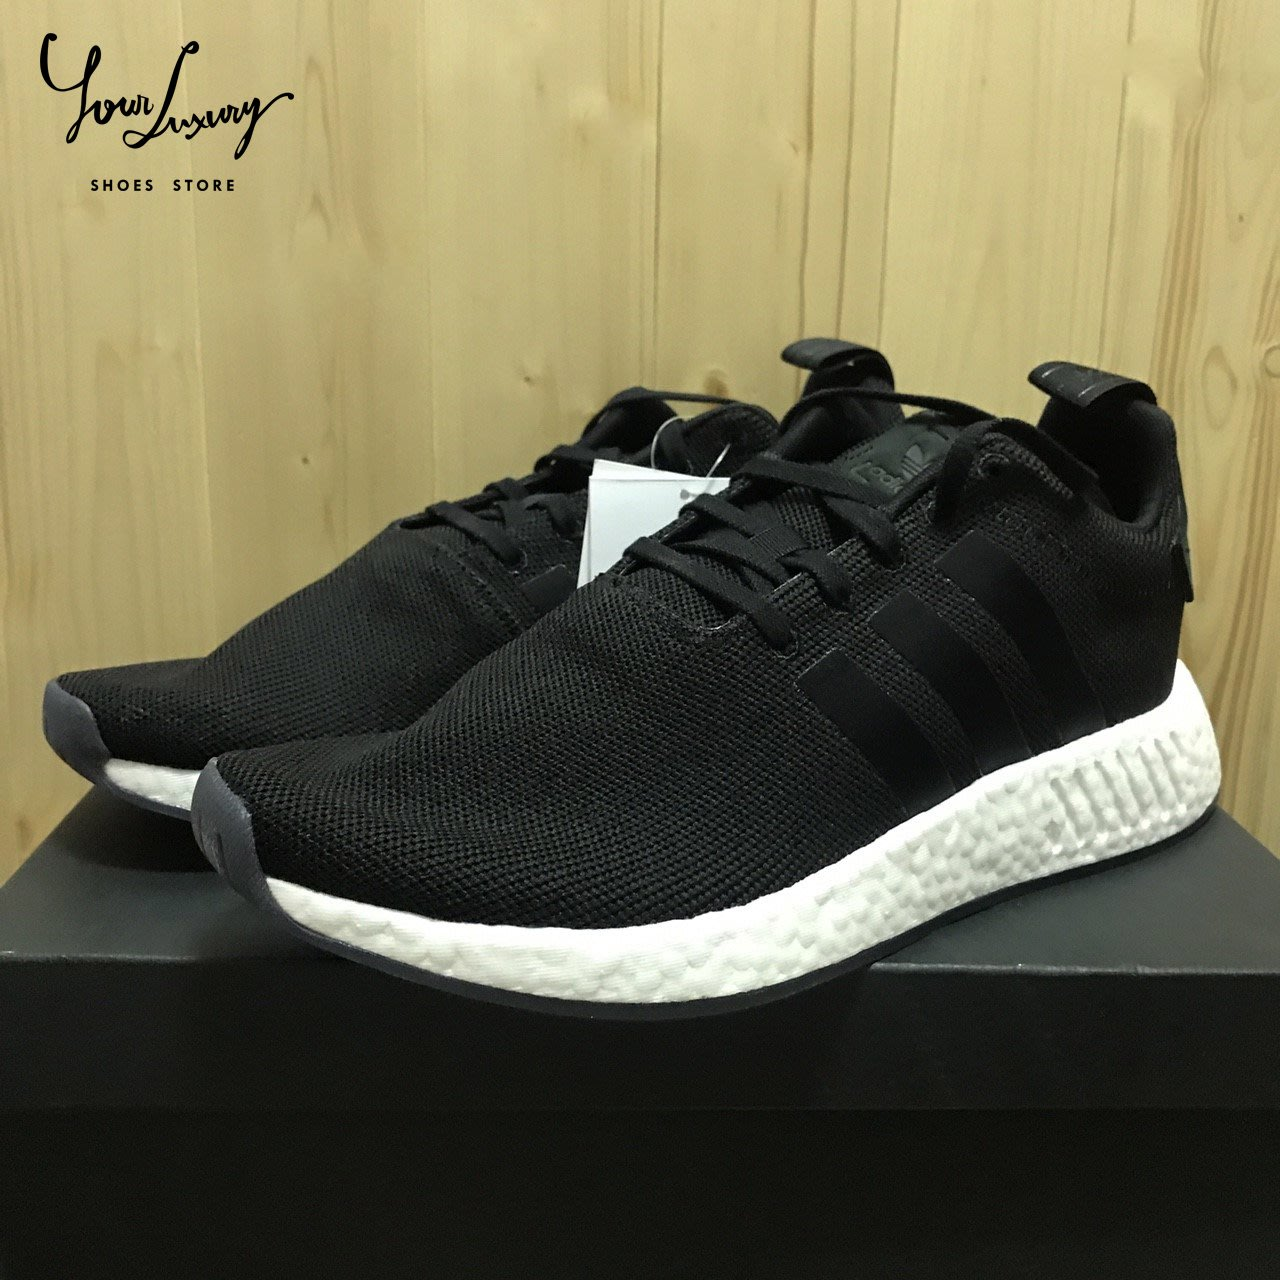 2ffc4e8e3b2b4 Luxury ADIDAS ORIGINALS NMD R2 黑白果凍底BOOST 麂皮皮標男鞋CQ2402 ...